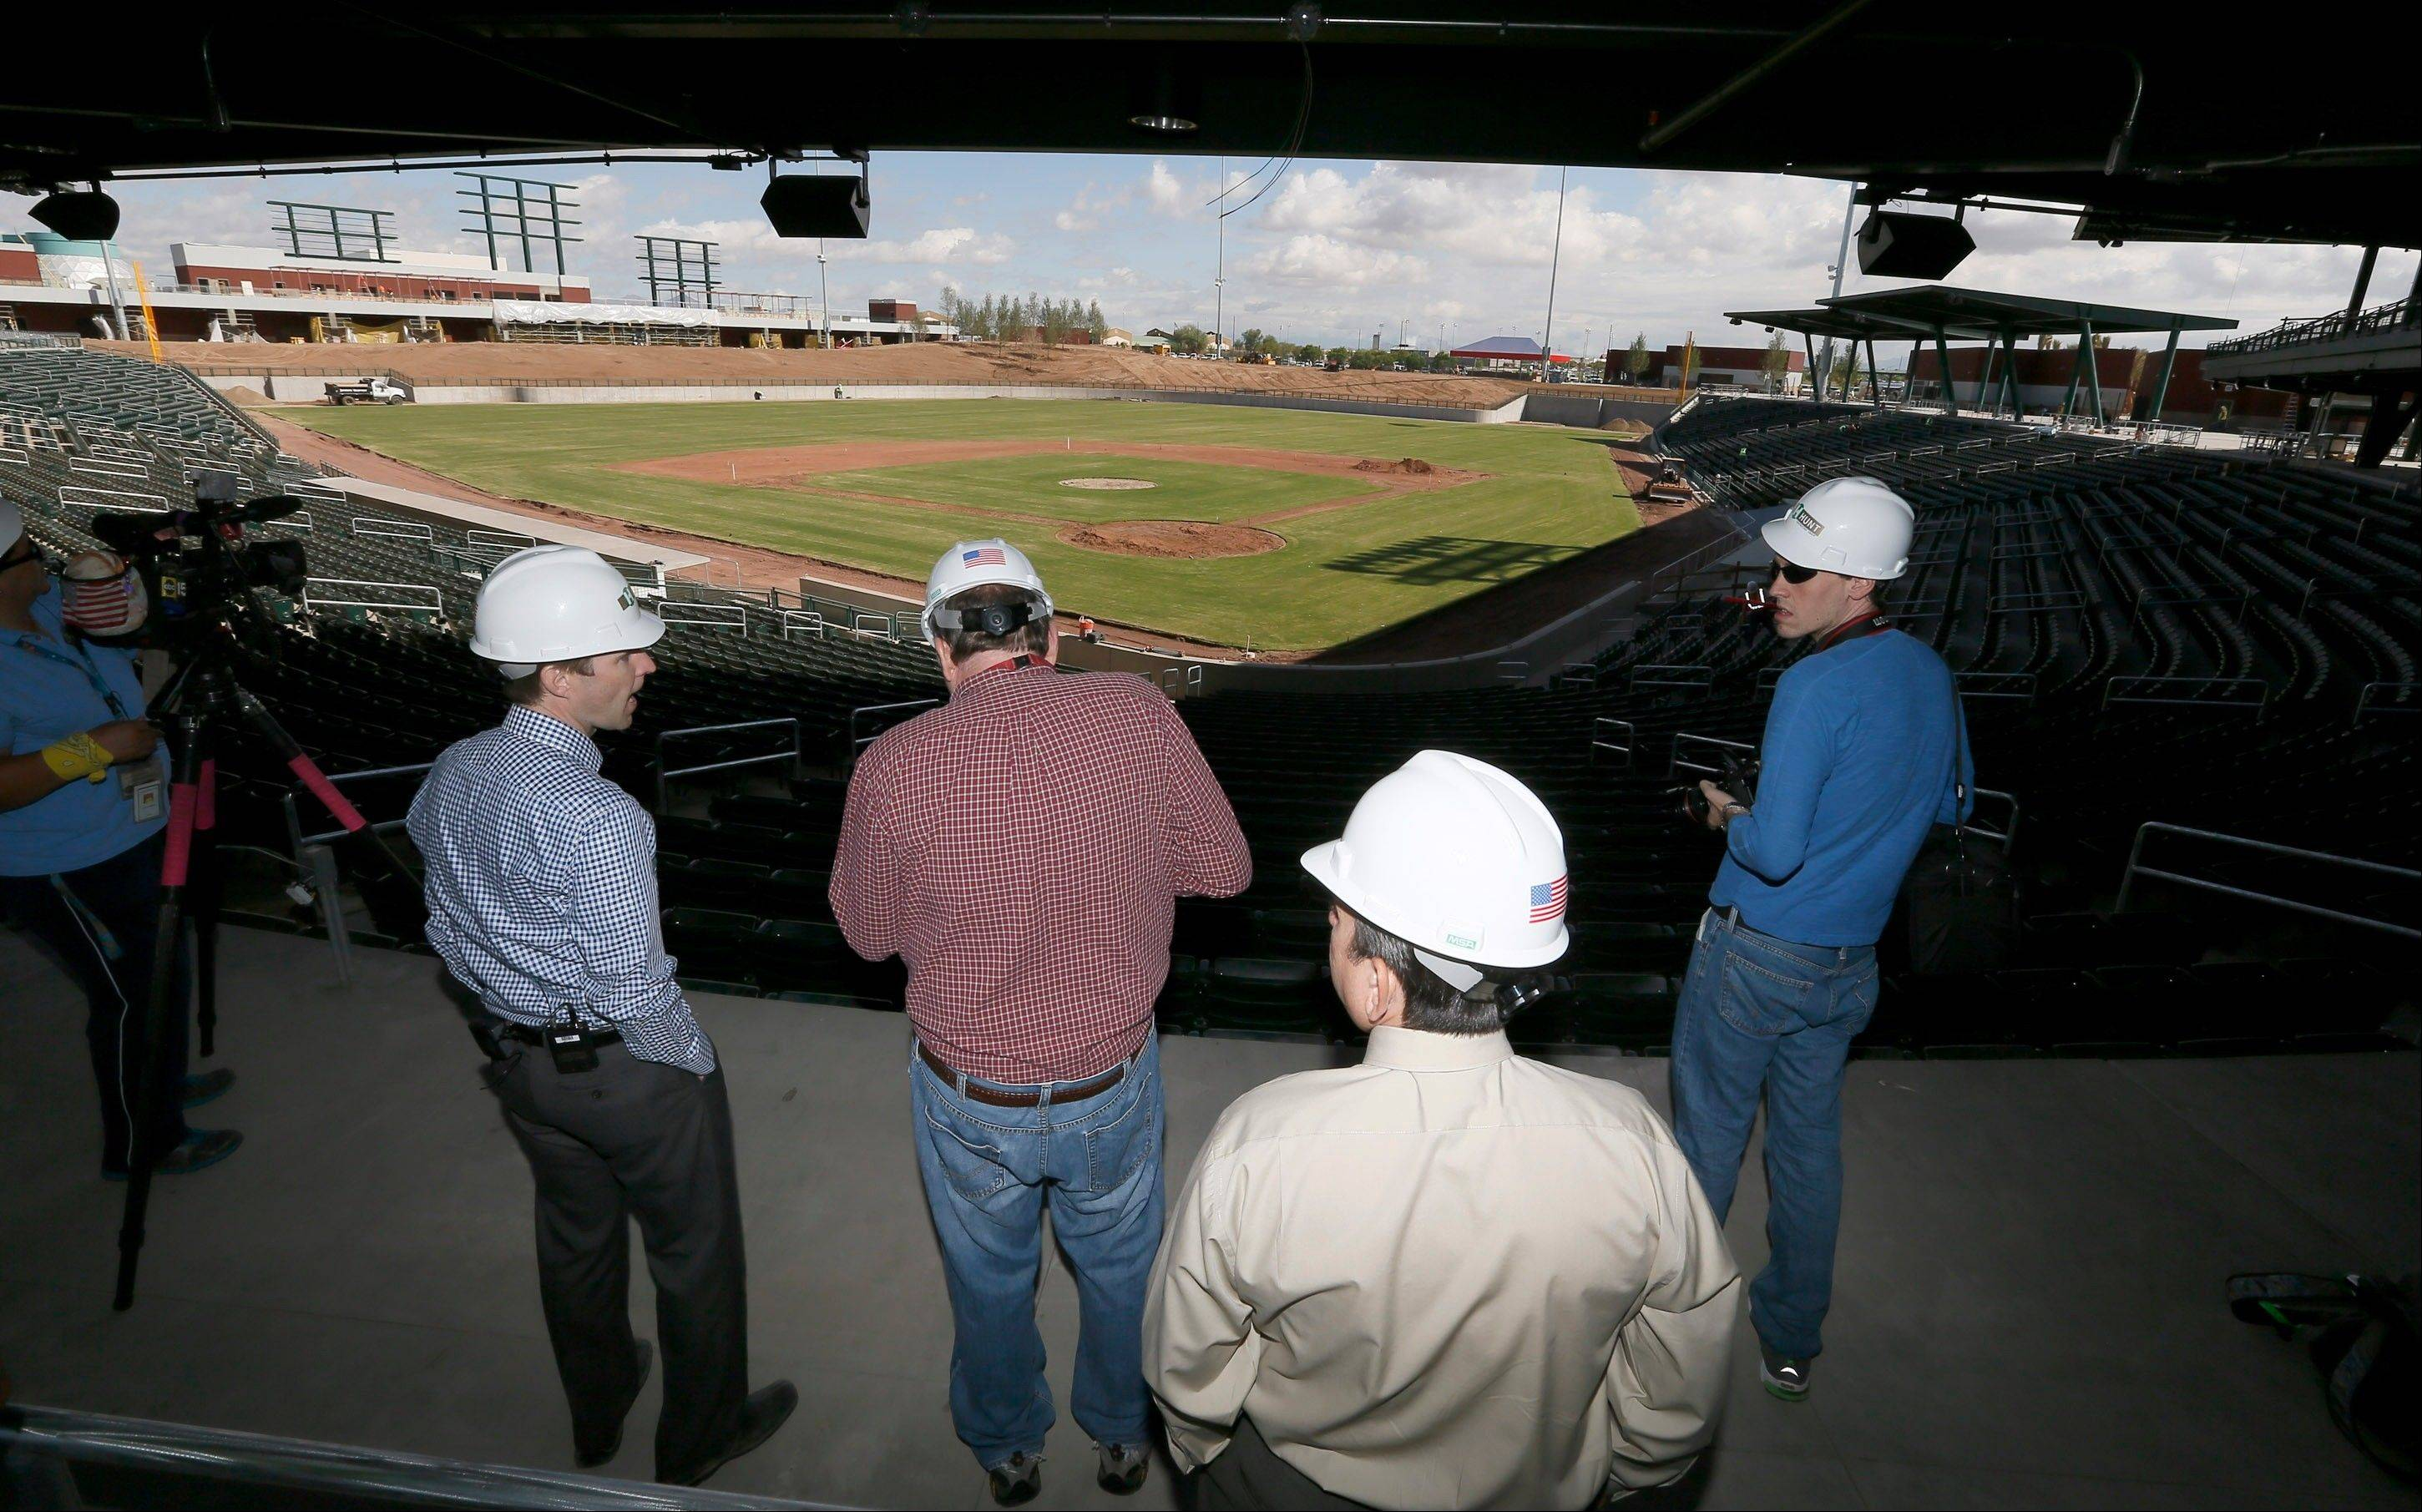 Justin Piper, left, Chicago Cubs general manager of spring training operations, shows members of the media the new stadium under construction at the team's new spring training facility on Thursday, Oct. 10, 2013, in Mesa, Ariz. The facility is scheduled to be open for next year's spring training. (AP Photo/Ross D. Franklin)